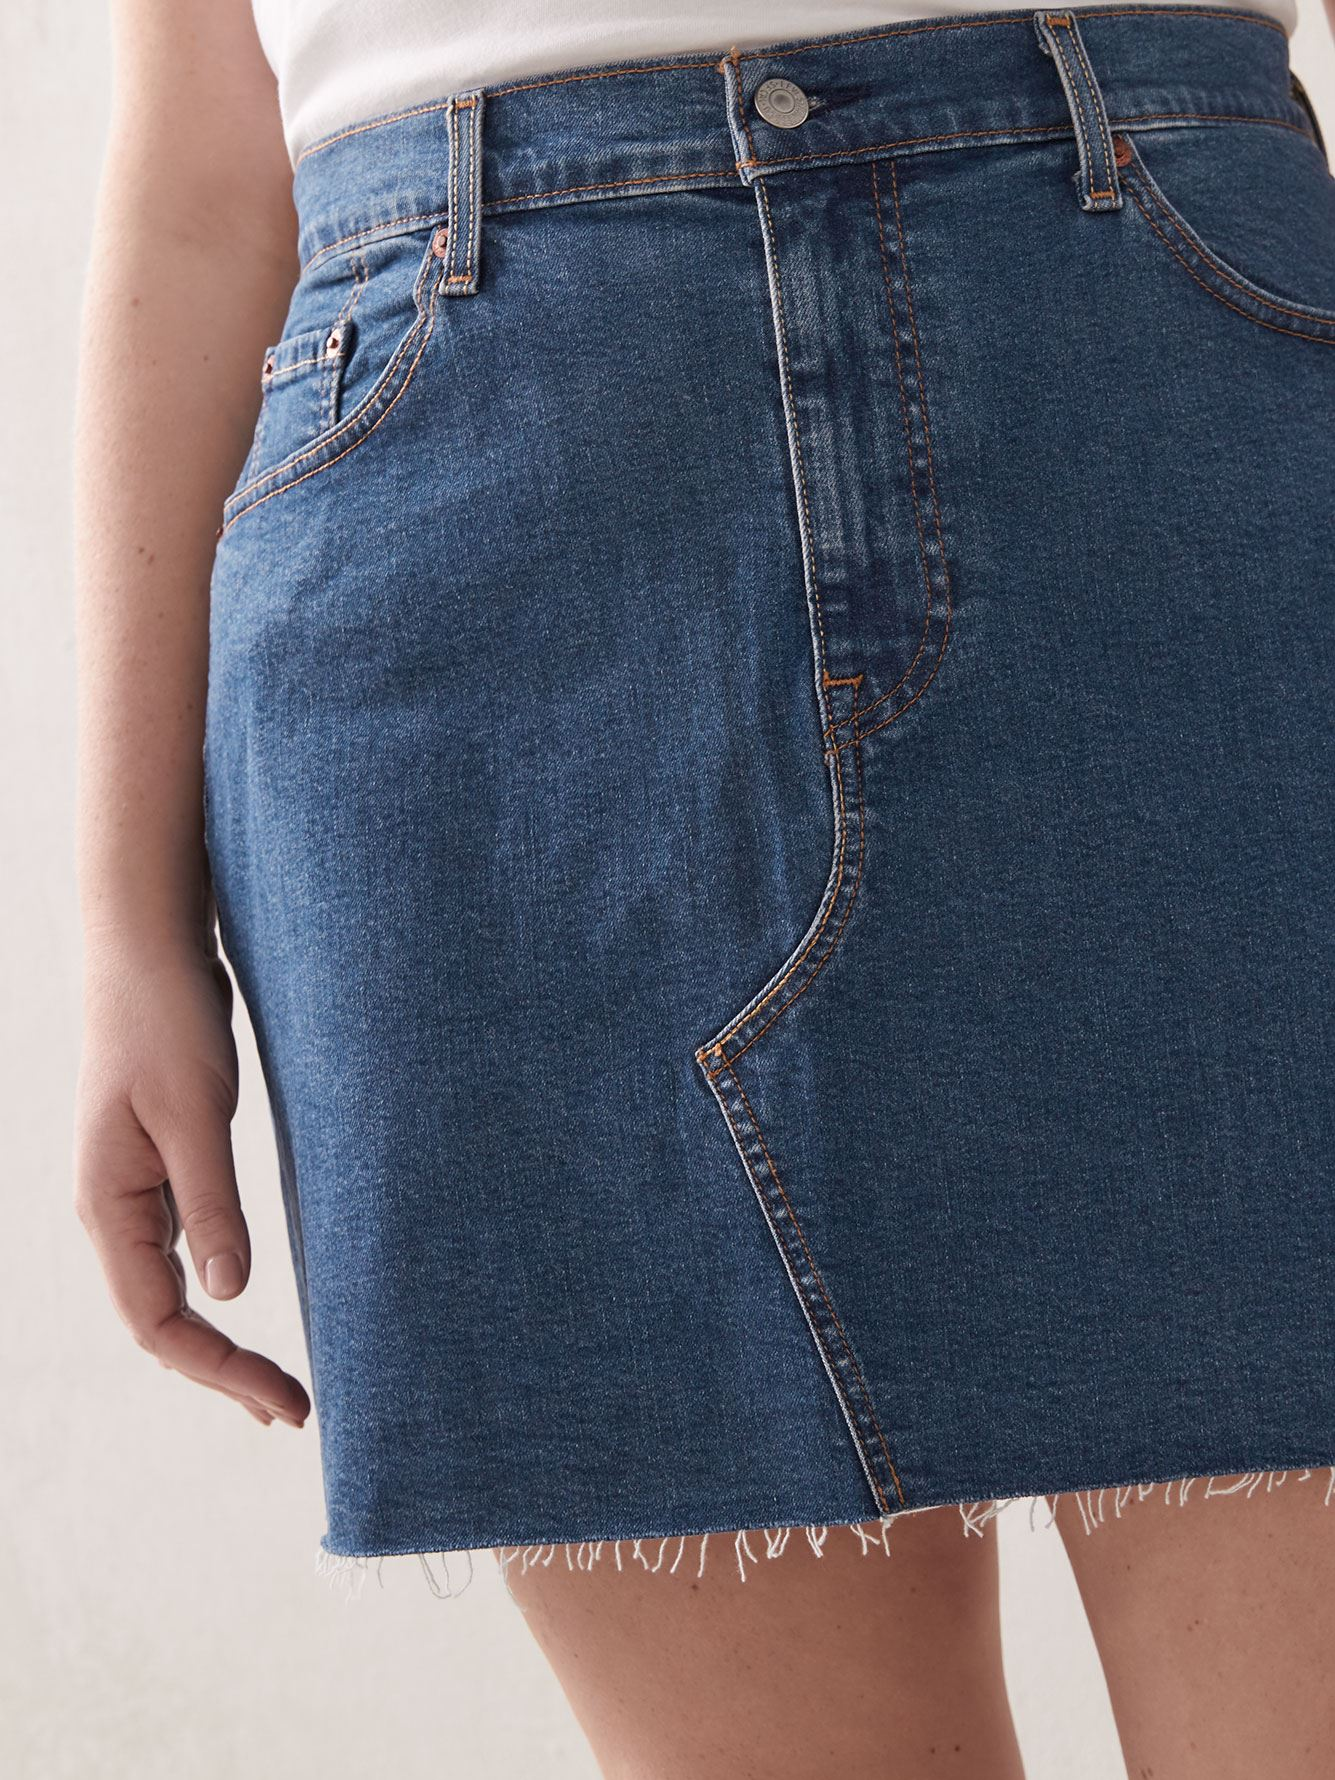 Stretchy Deconstructed Meet in the Middle Jean Skirt - Levi's Premium